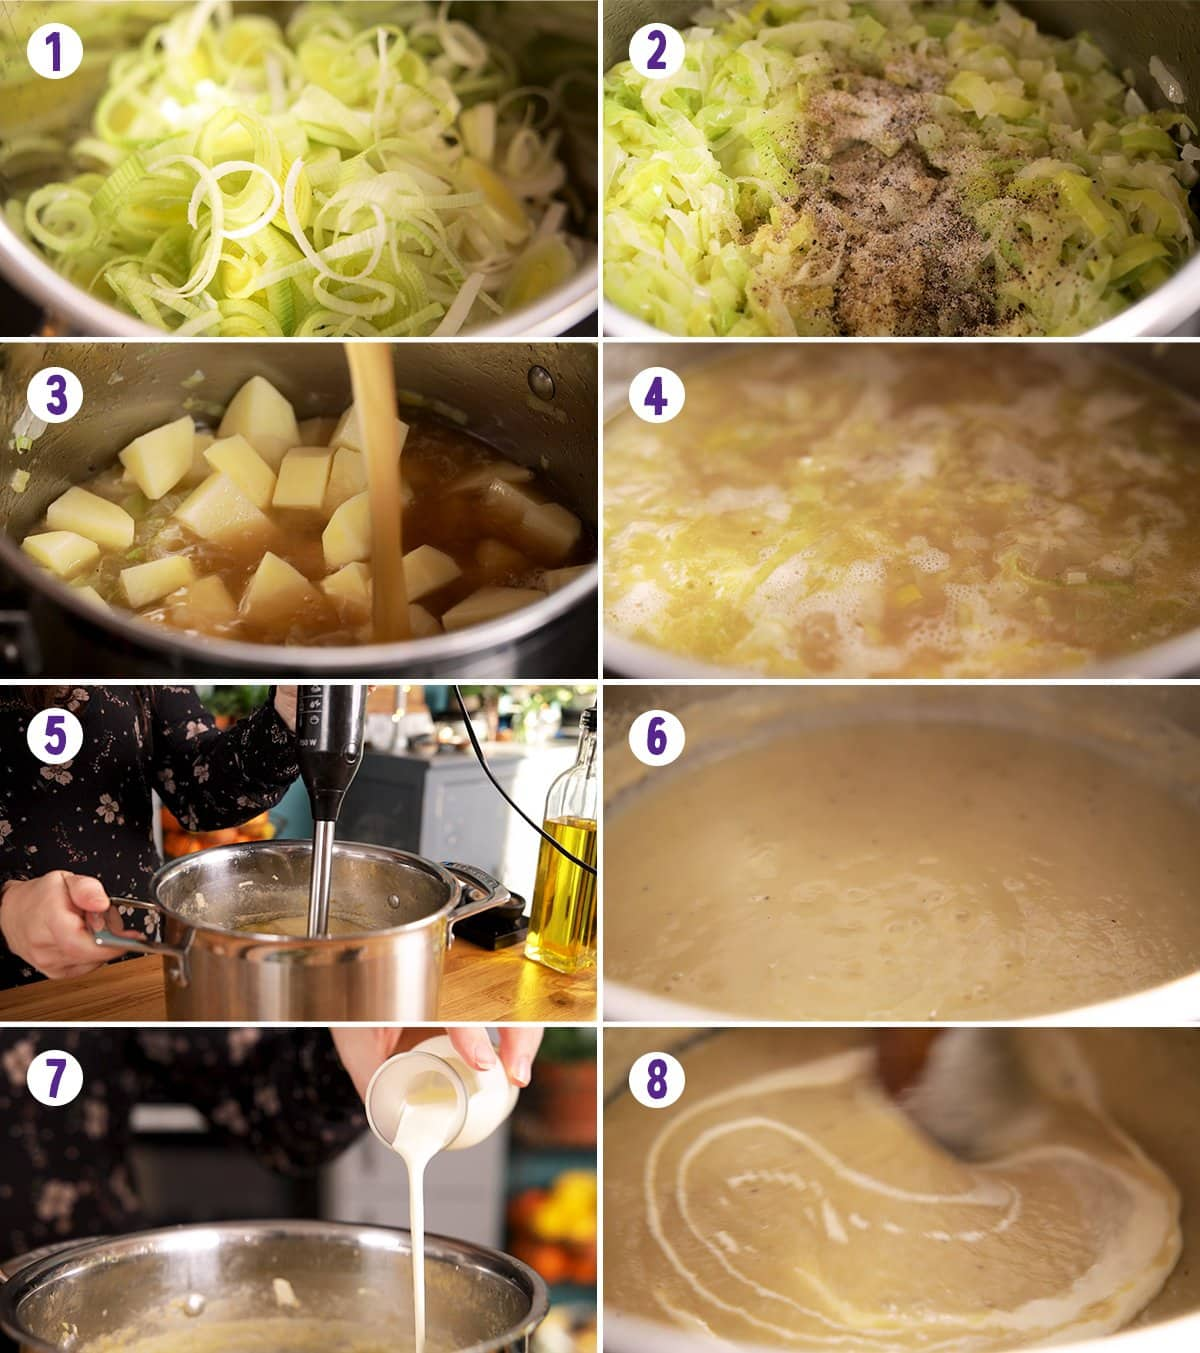 8 image collage showing how to make leek and potato soup